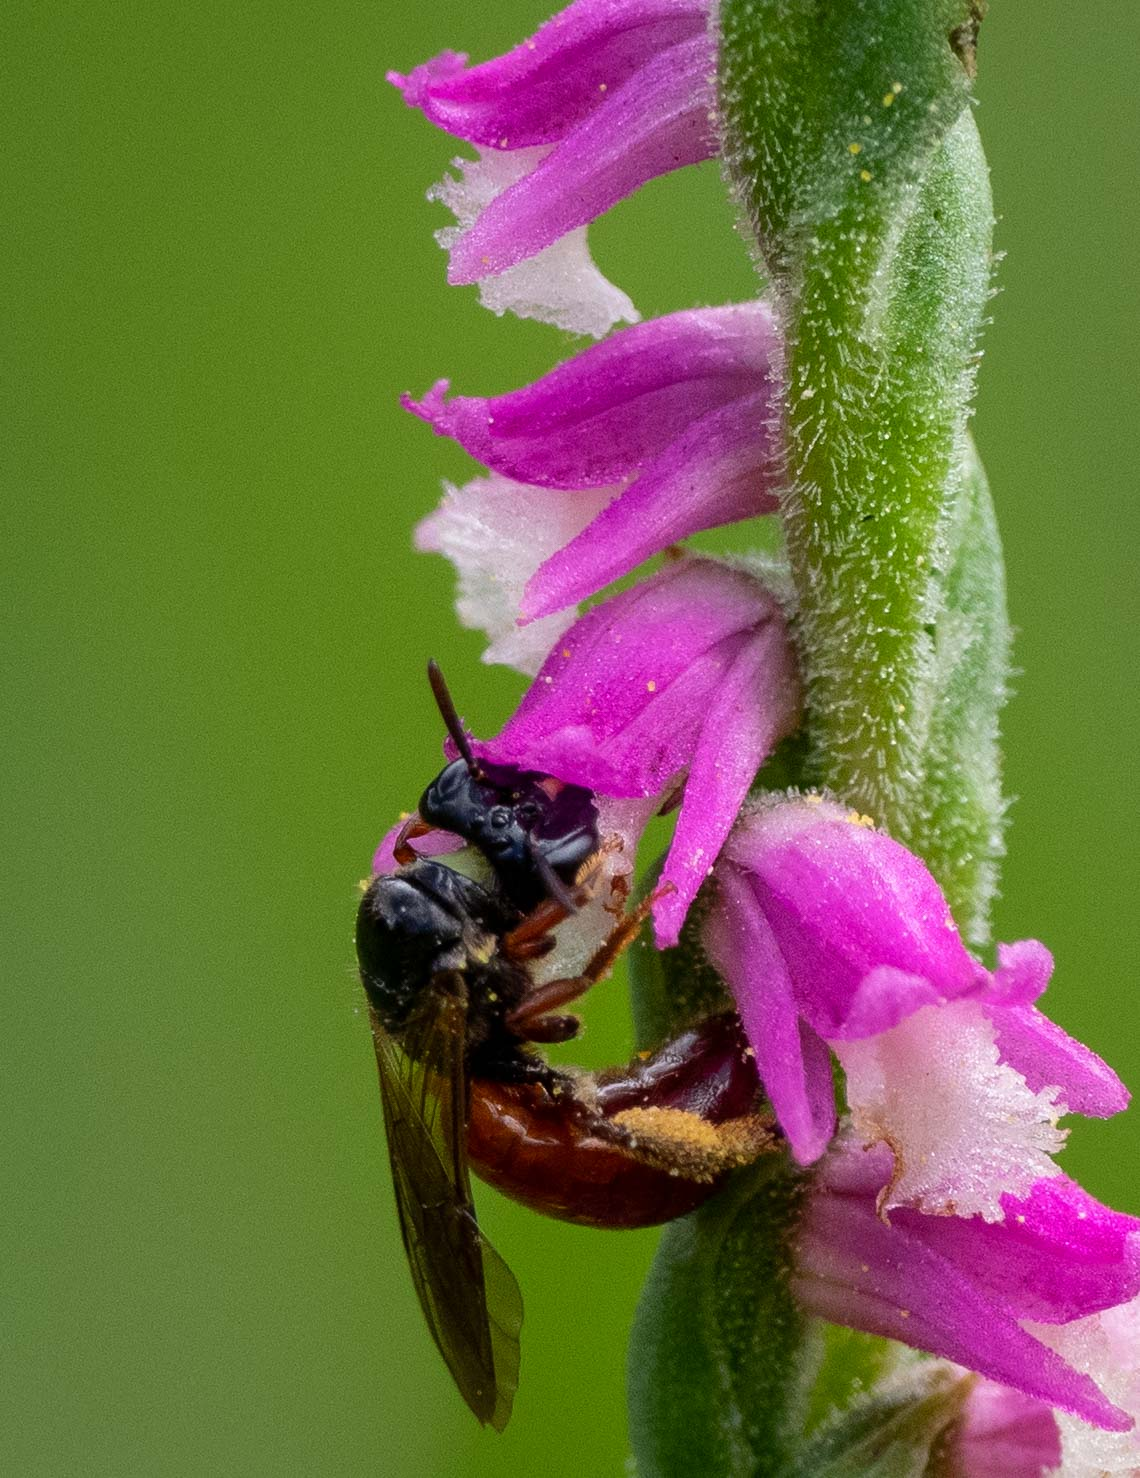 Exoneura bee feeding on orchid